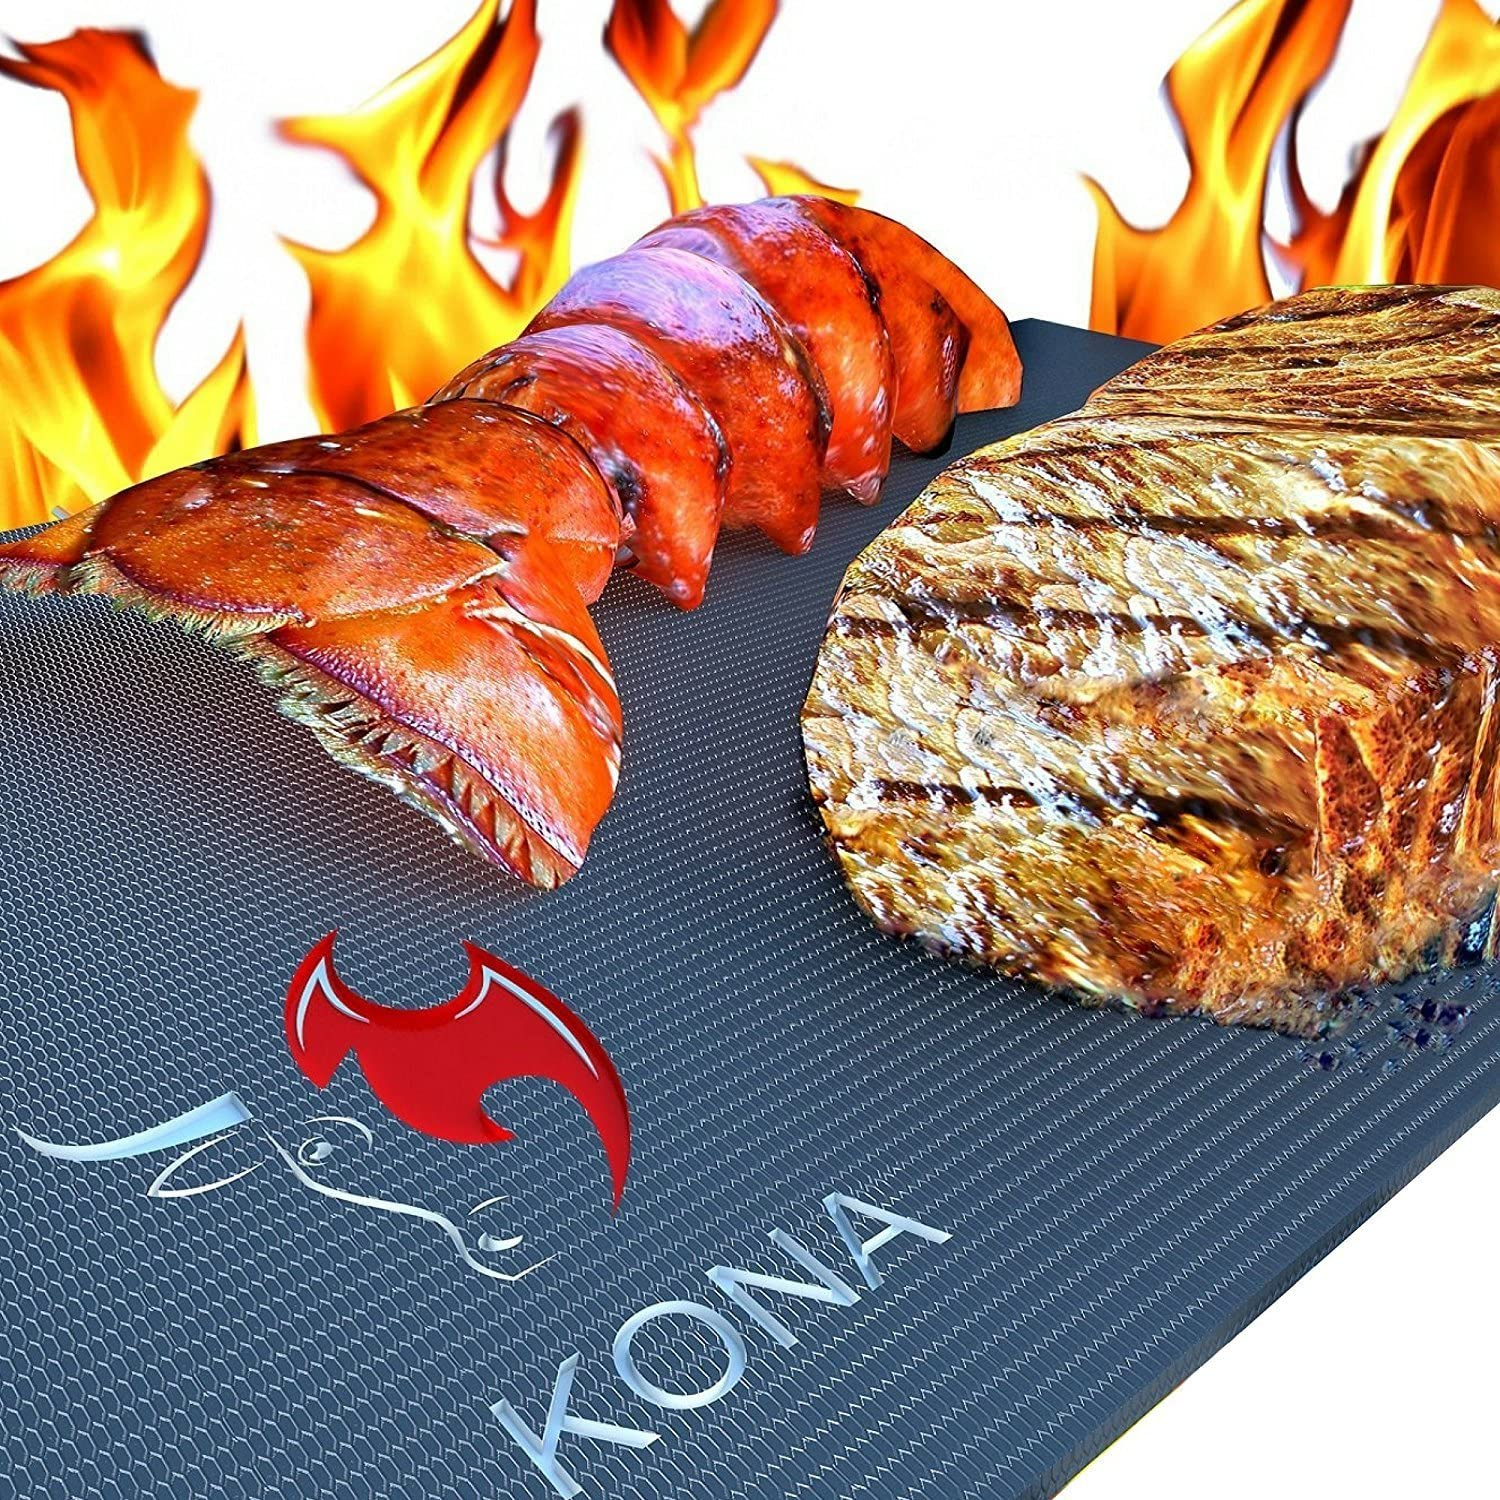 grilling-gifts-kona